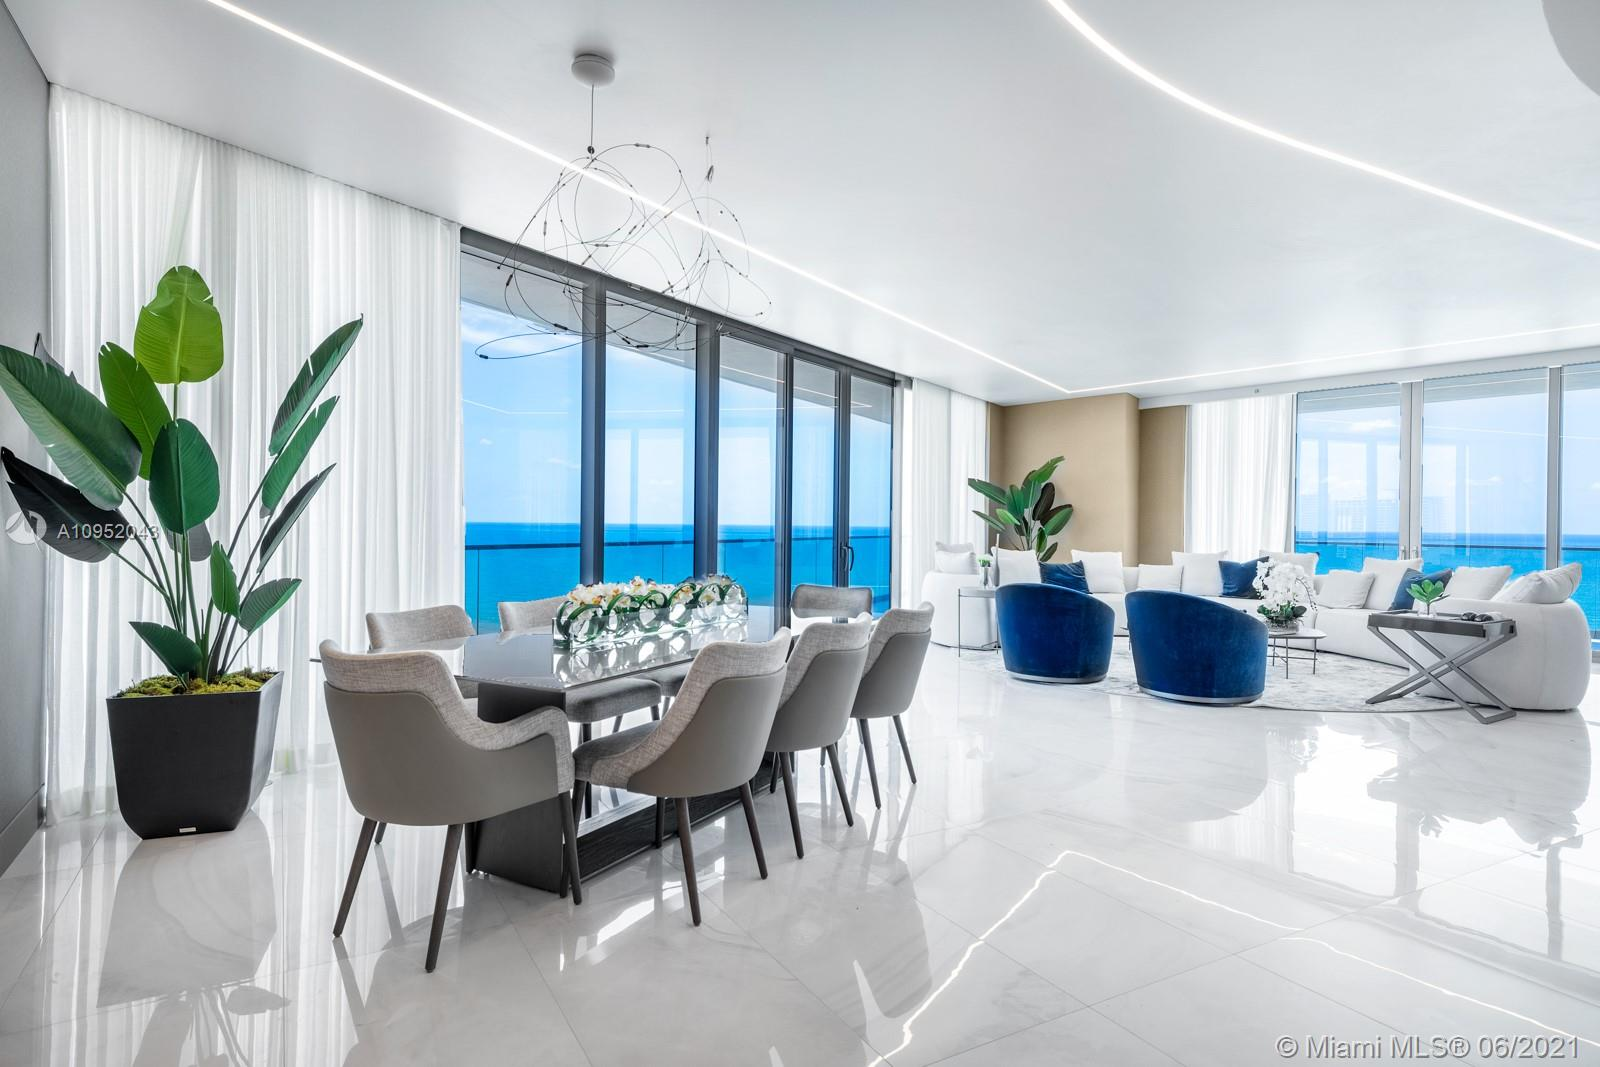 18975 Collins Ave Unit 1500, Sunny Isles Beach, Florida 33160